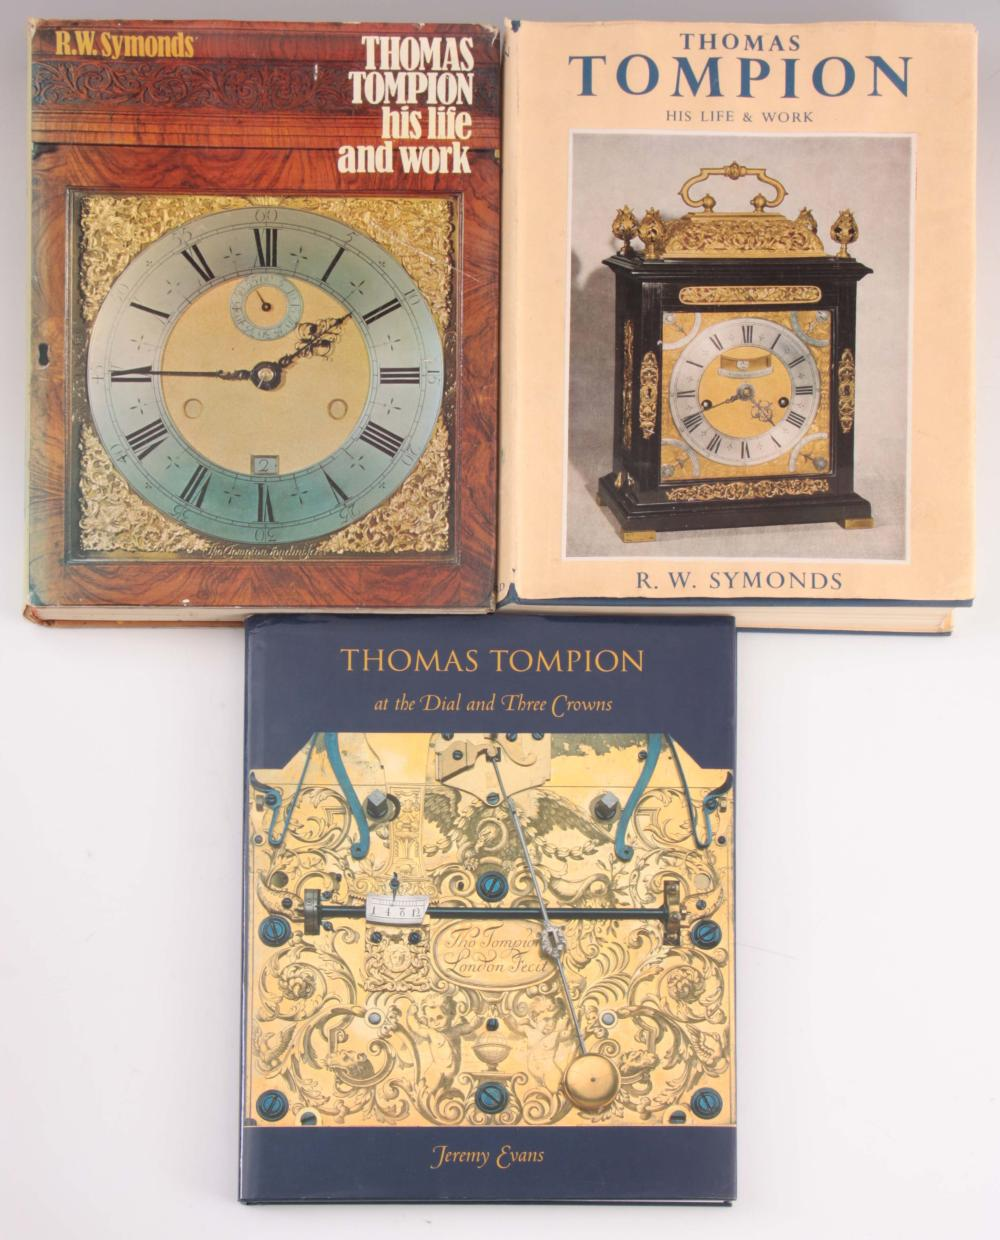 1, JEREMY EVANS, THOMAS TOMPION AT THE DIAL AND TH